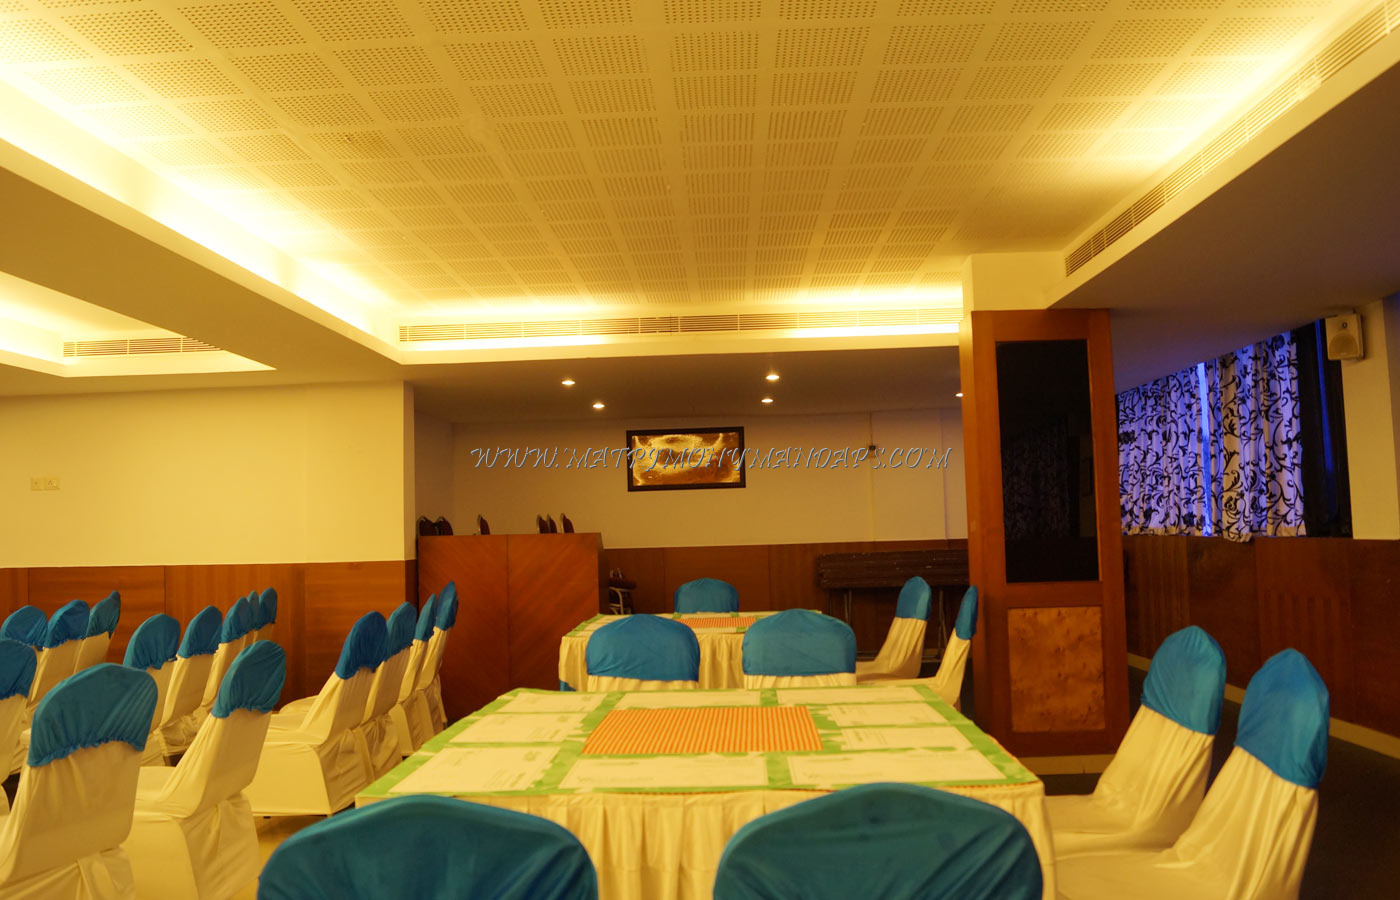 Find the availability of the Hotel White Dammar Mango Tree (A/C) in Pappanamcode, Trivandrum and avail special offers